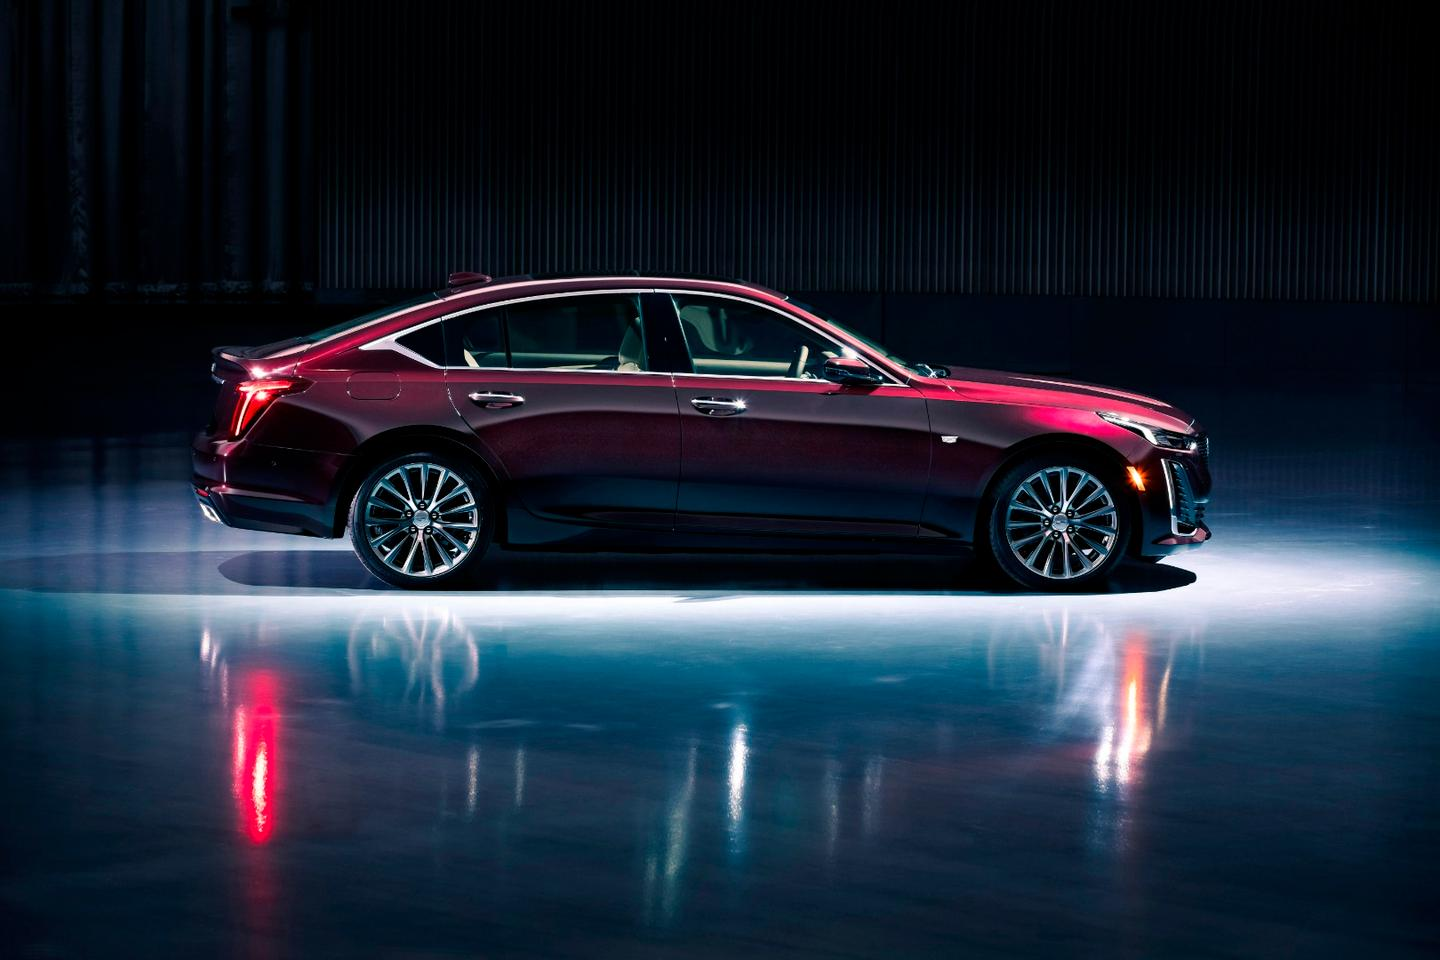 With a wheelbase of only 116 inches (2,94 7mm), the Cadillac CT5 has a track width of 62.8 inches (1,594 mm) at the front and 63.9 inches (1,624 mm) at the rear